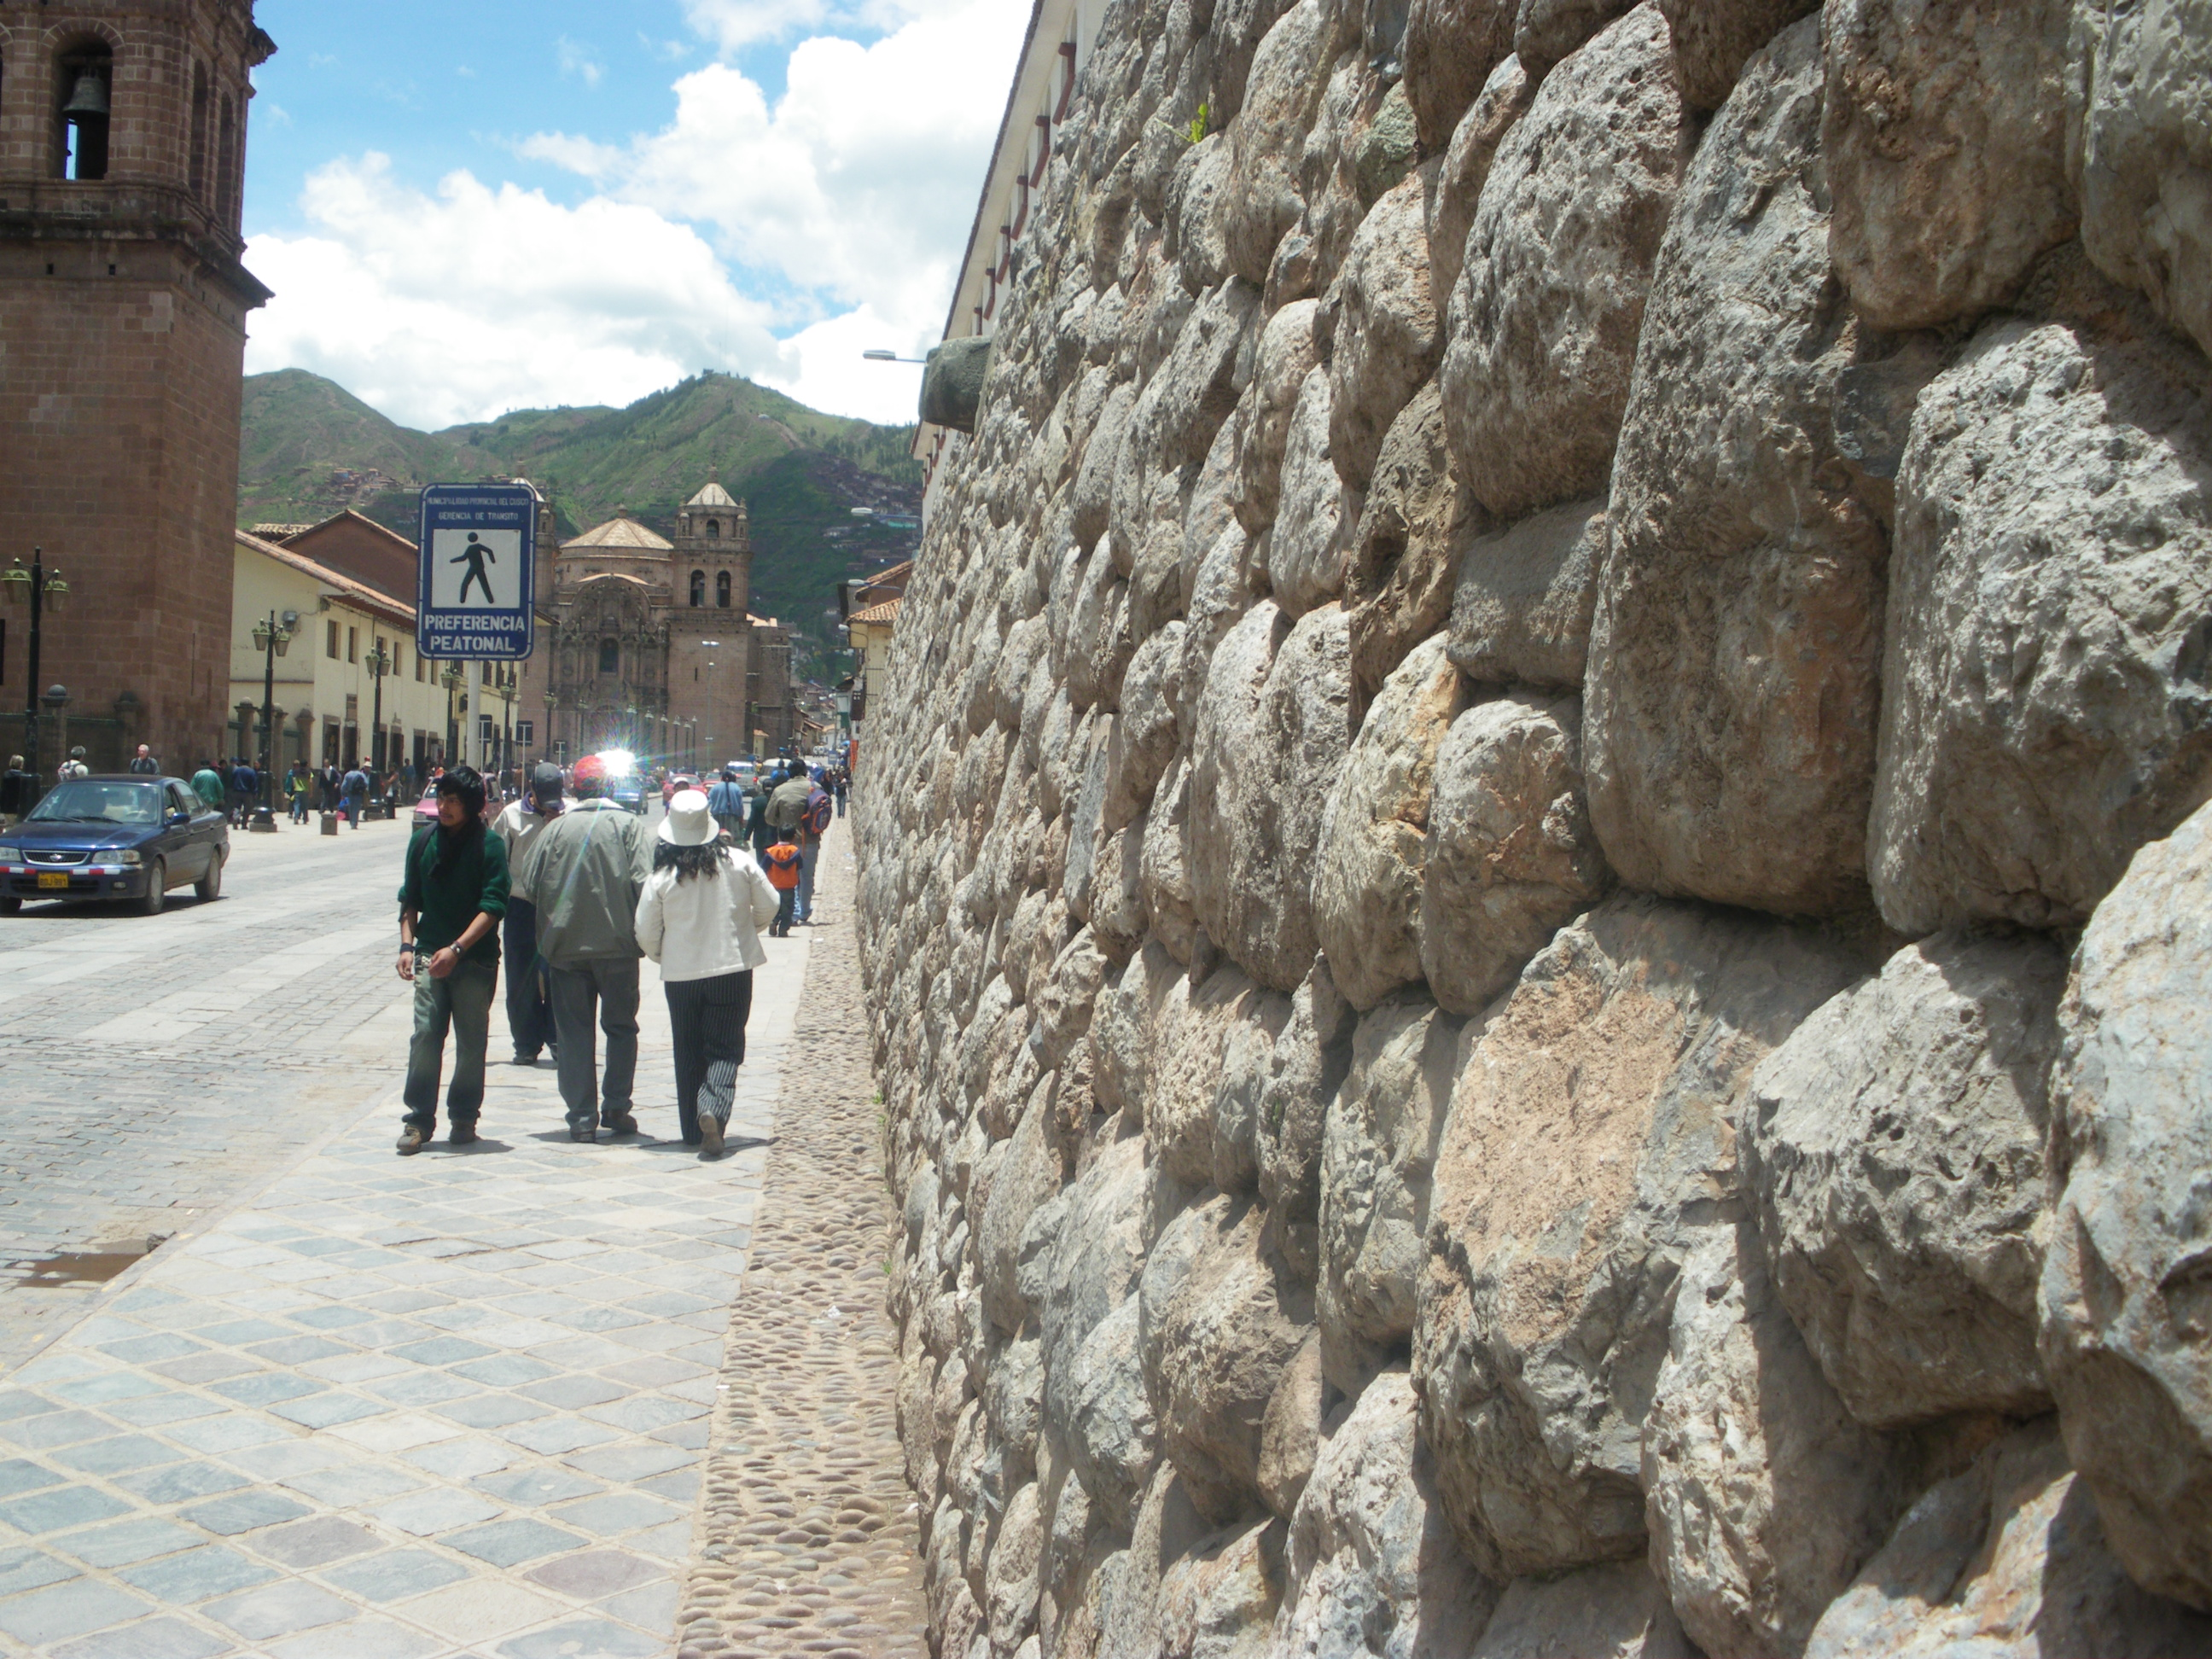 One of the many old walls of the city.